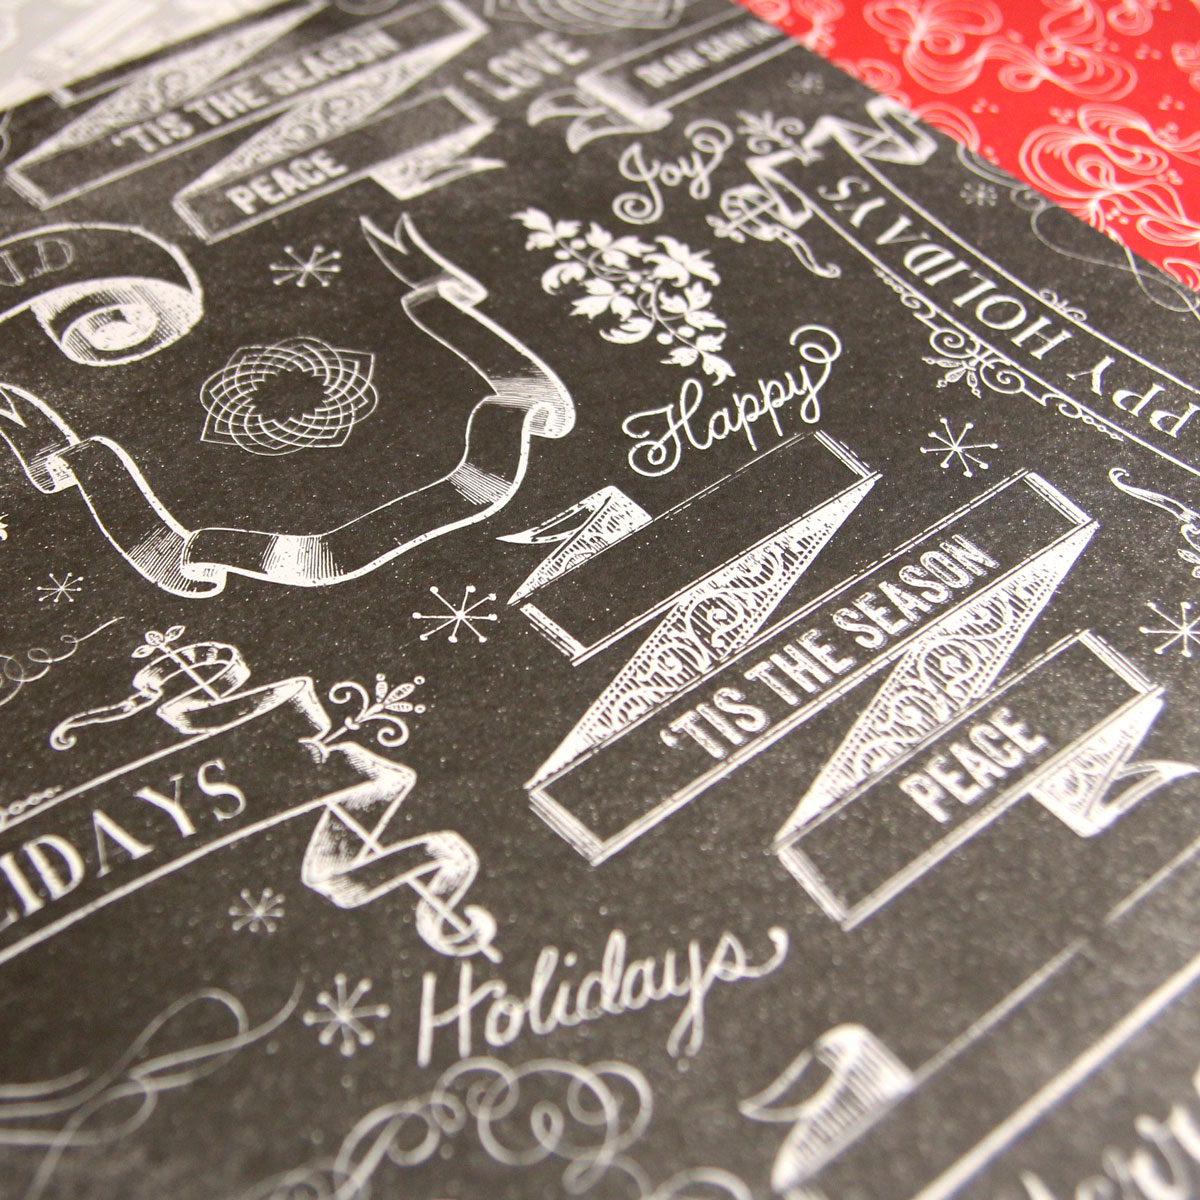 Mr_wonderful_shop_decoracion_navidad_2014_085